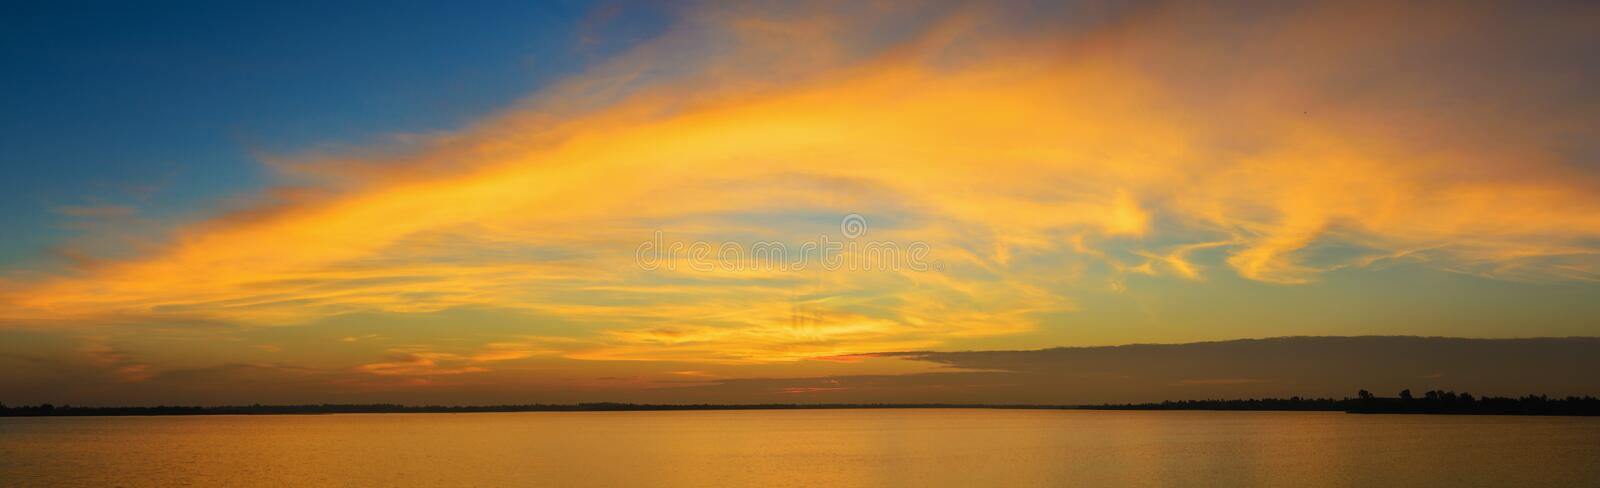 Orange sunset sky. Nature landscape backdrop.  stock image